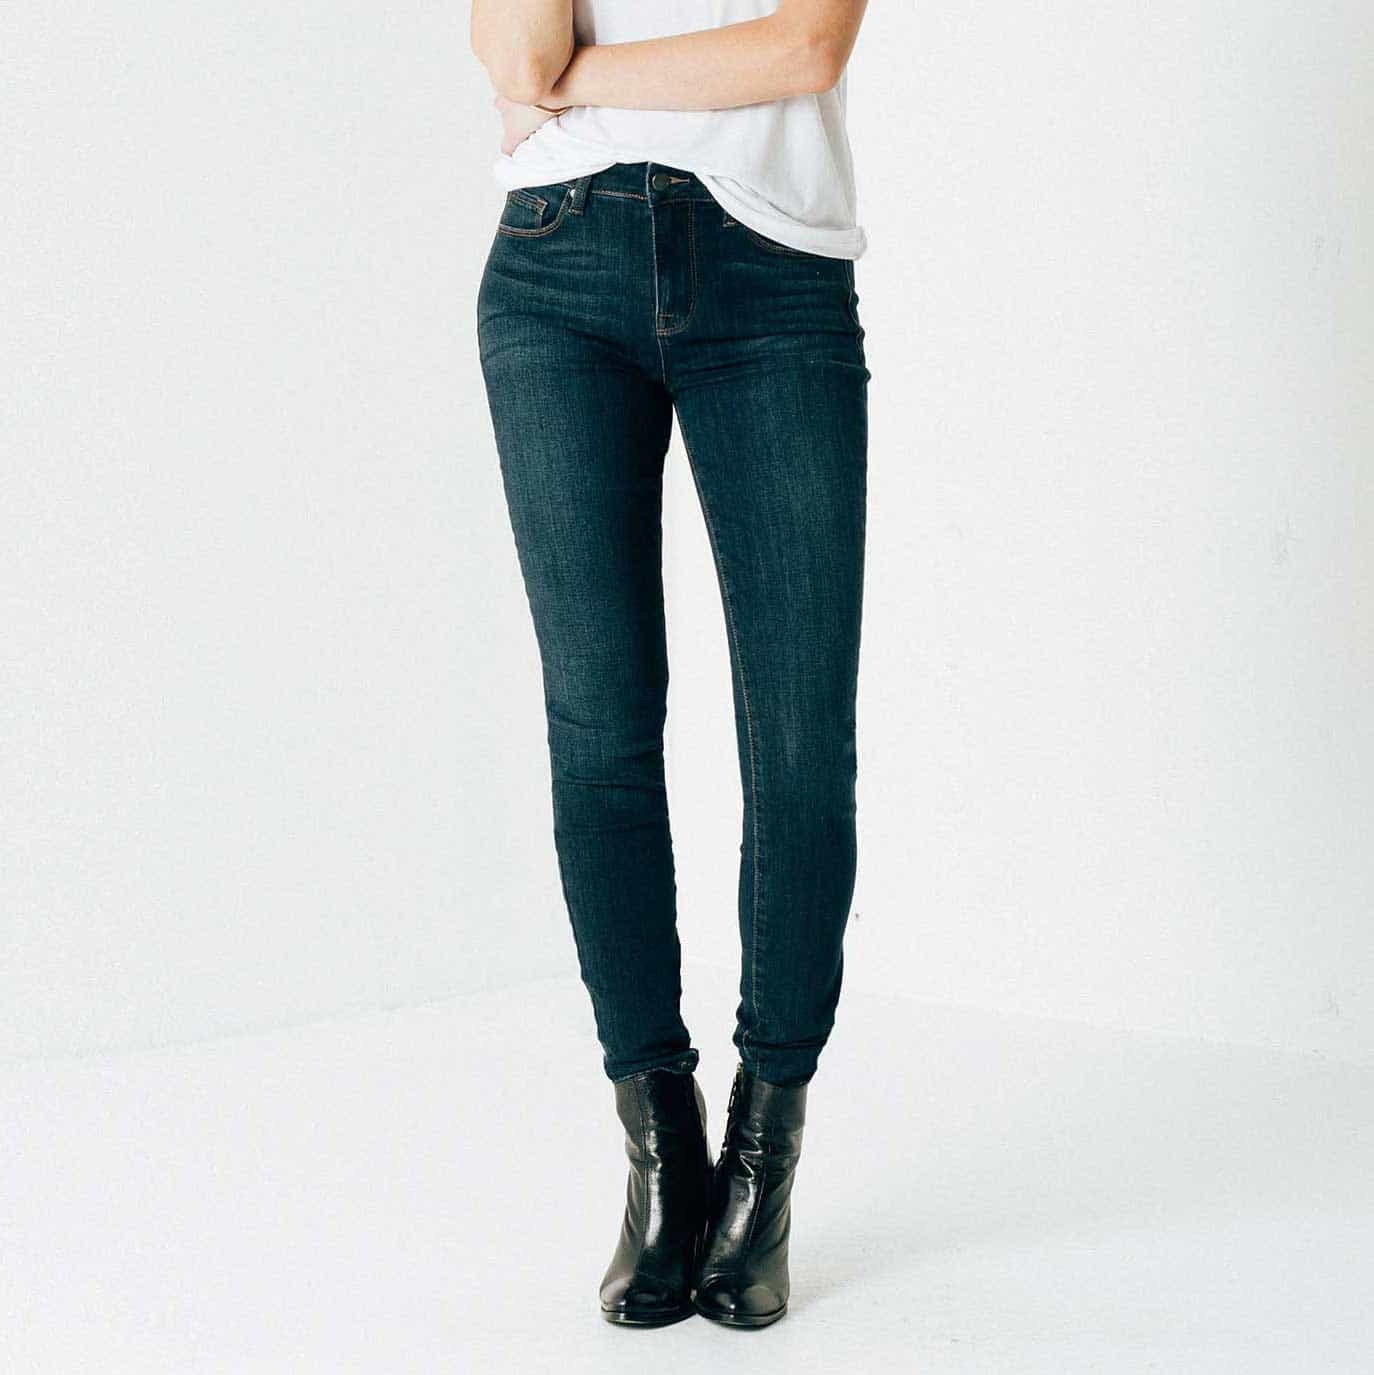 Womens High Waisted Skinny Jeans In Dark Vintage | DSTLD